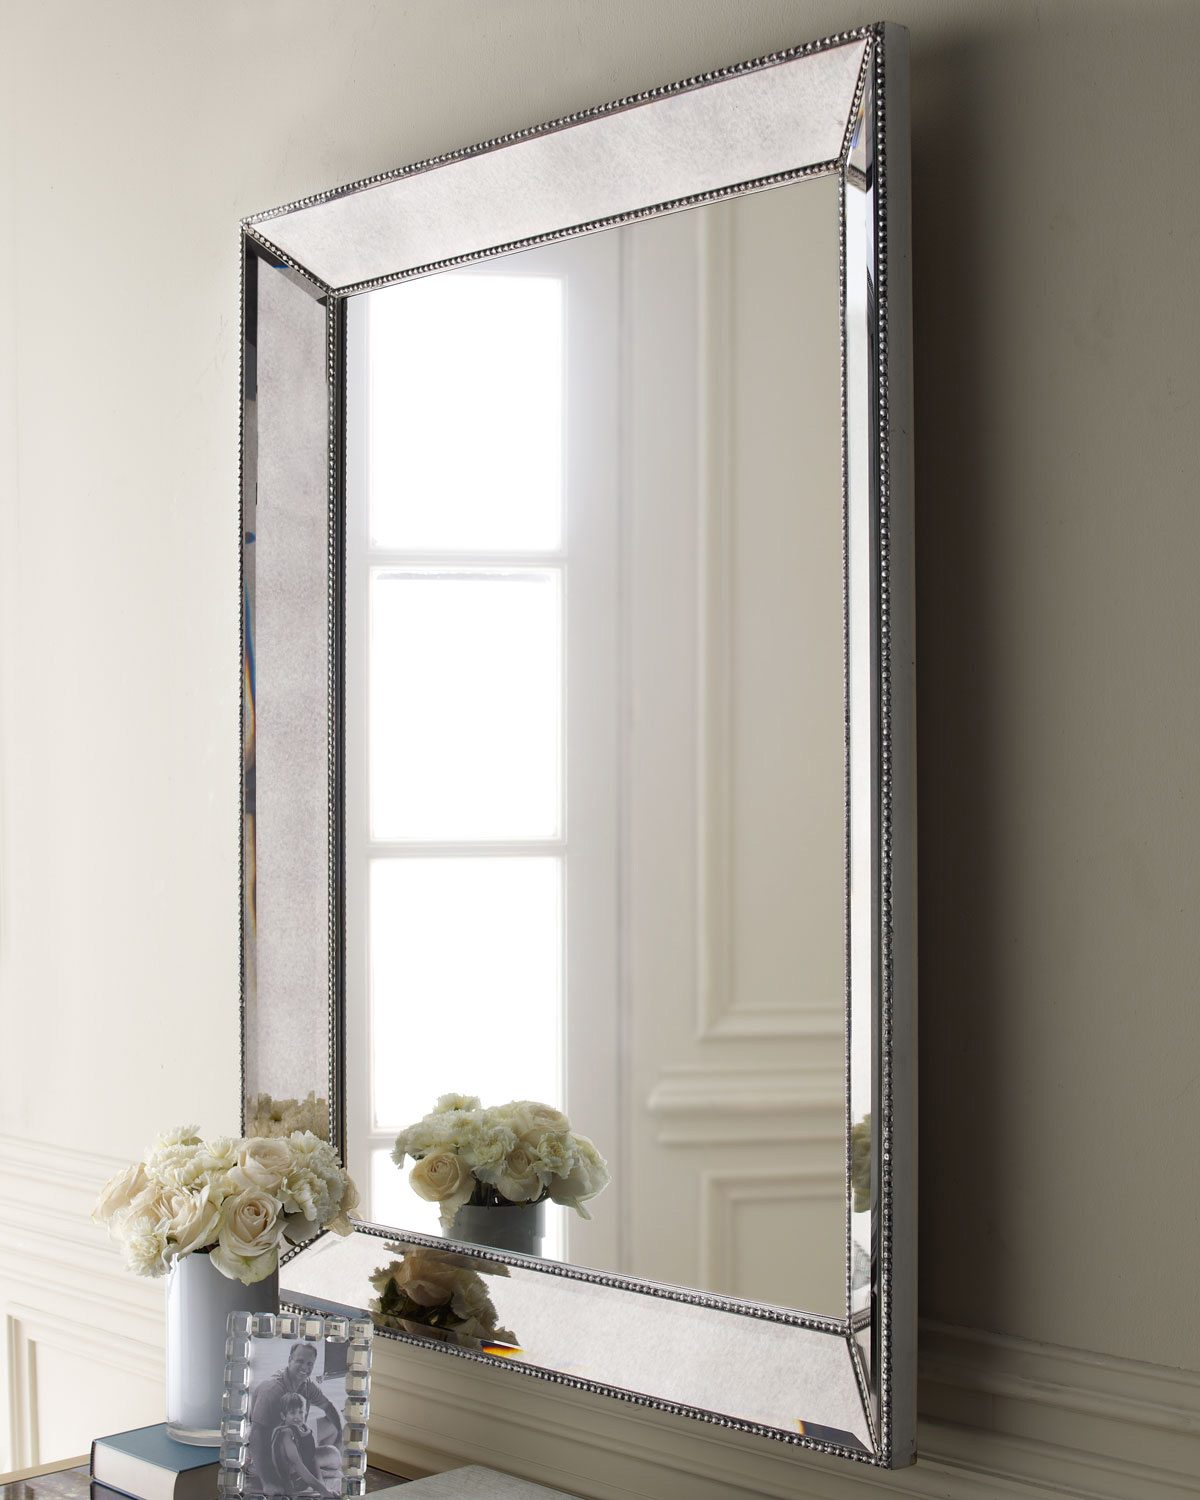 Brown Interior Accent With Reference To Metal Framed Mirrors Intended For Beaded Accent Wall Mirrors (View 14 of 30)